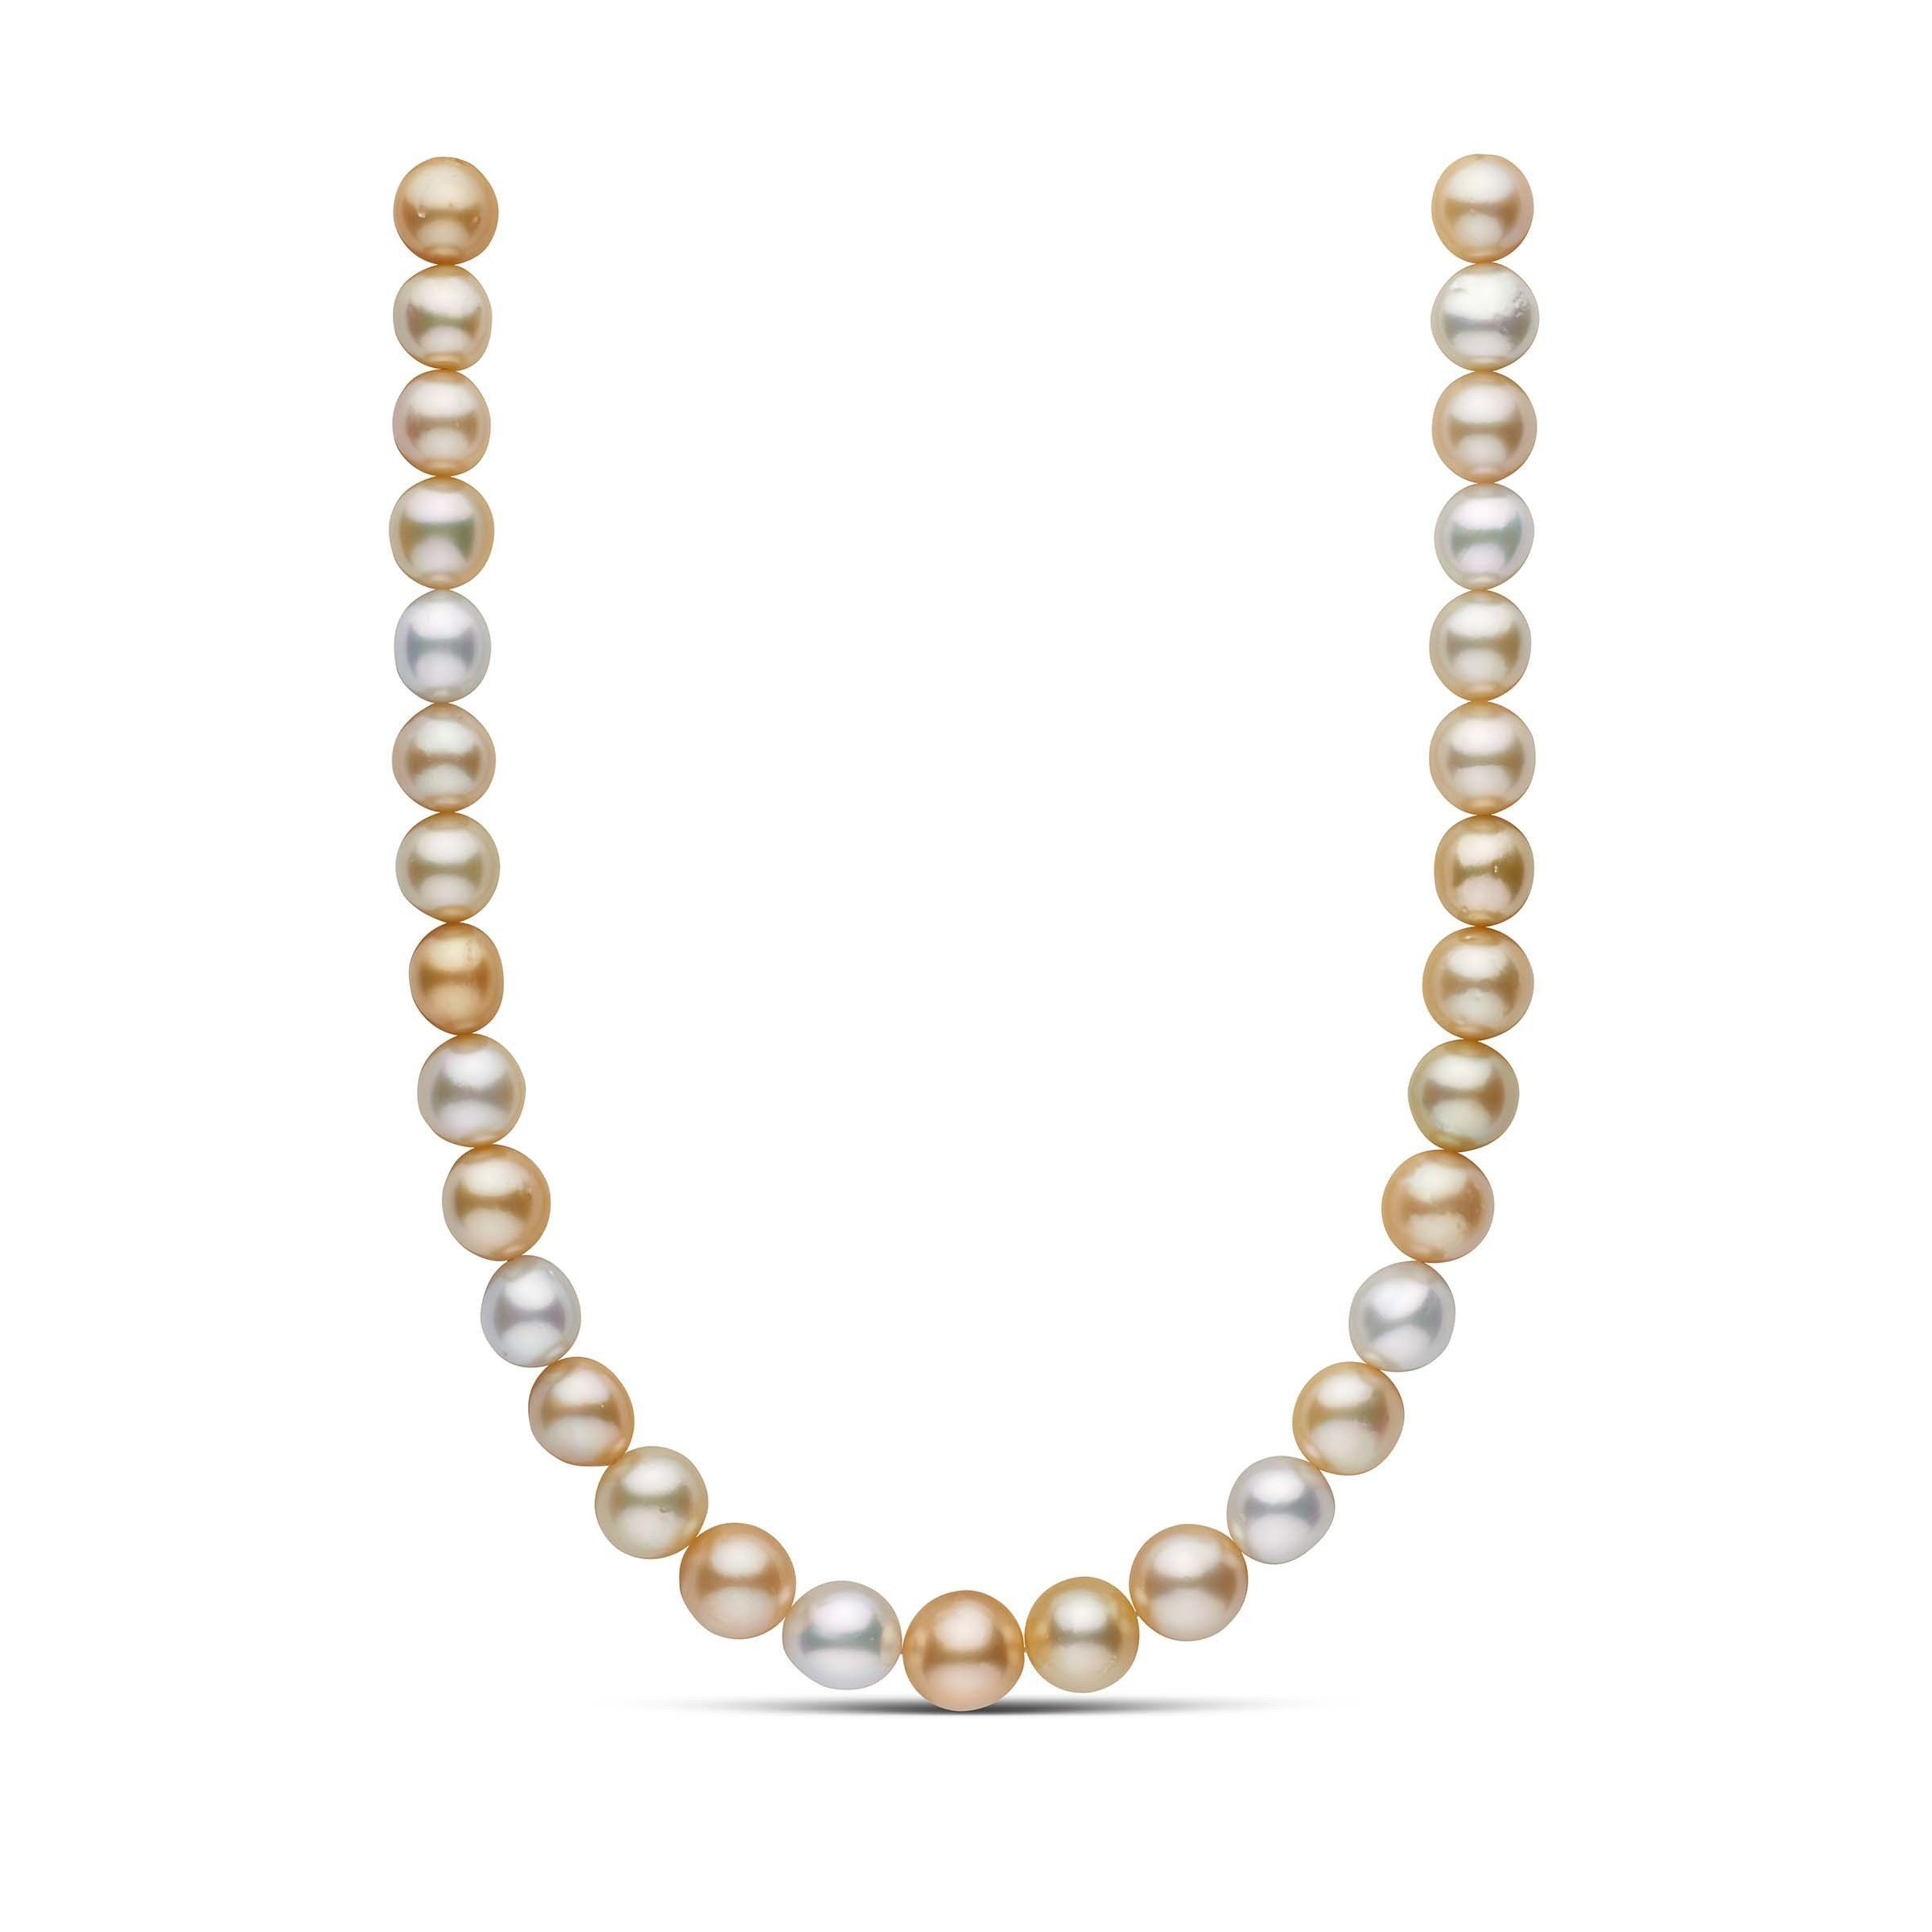 12.0-14.1 mm AA+/AAA Multi South Sea Pearl Necklace